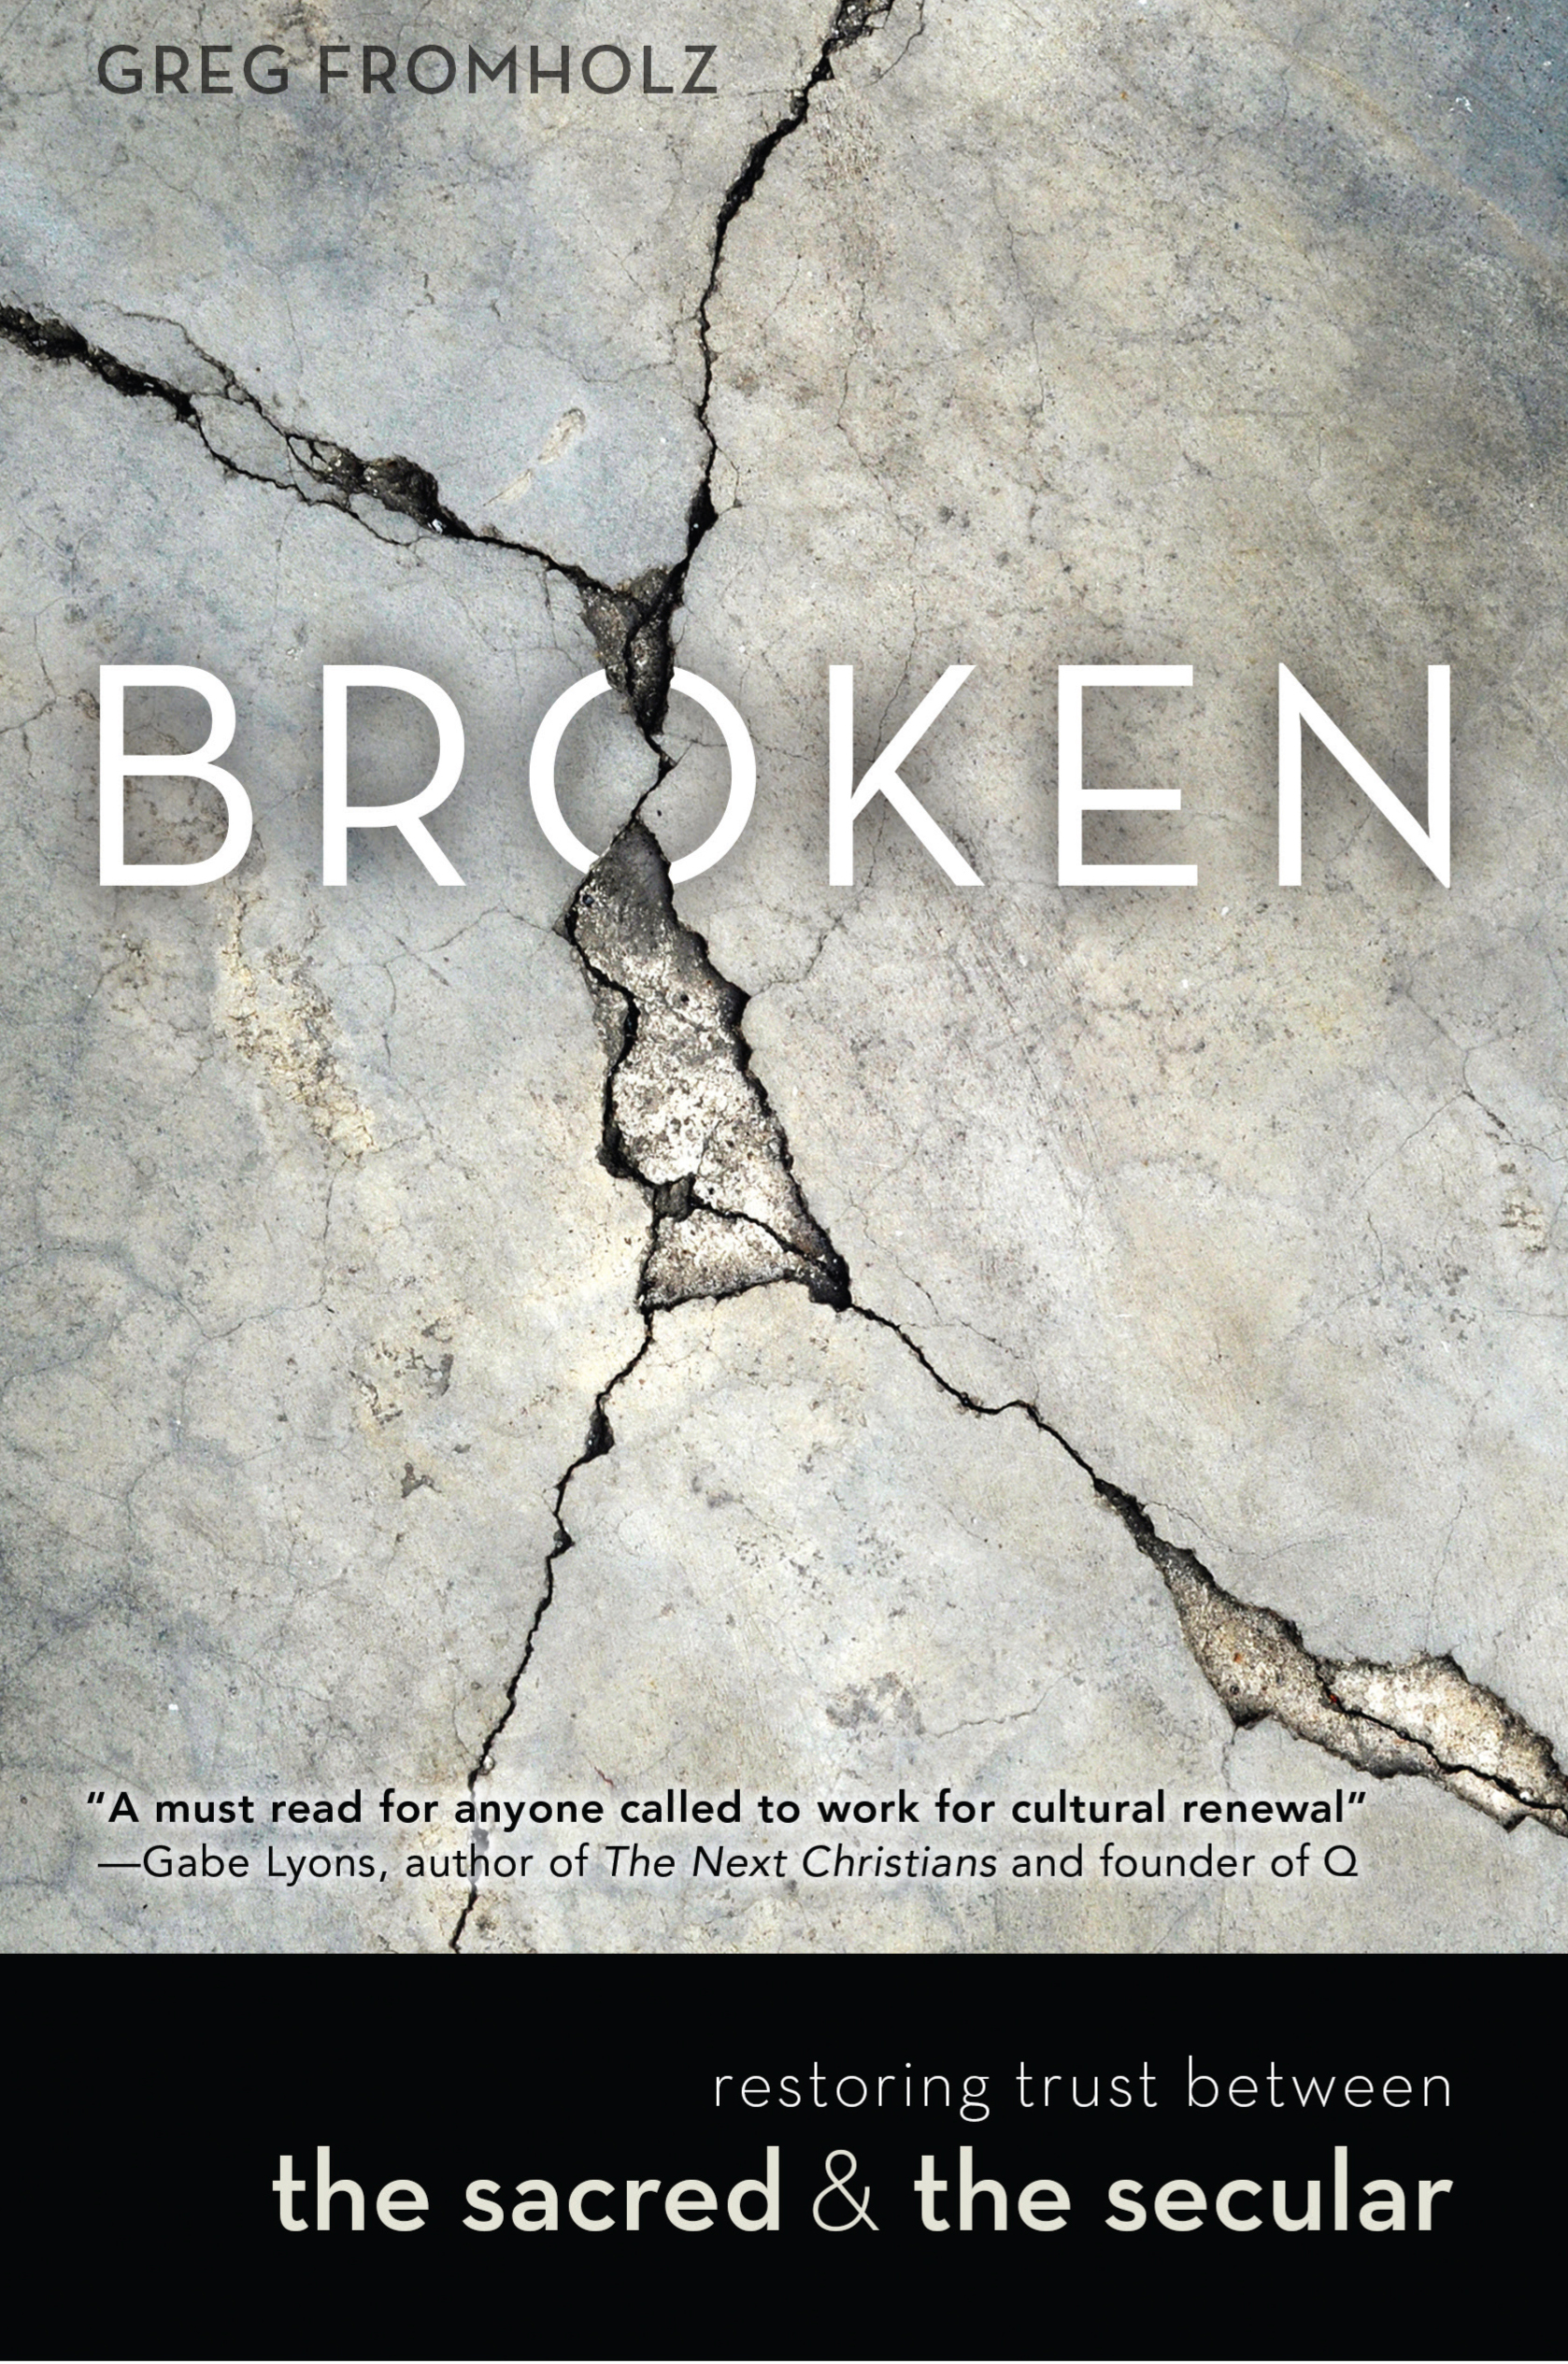 hi-res Broken front cover (cropped).jpg